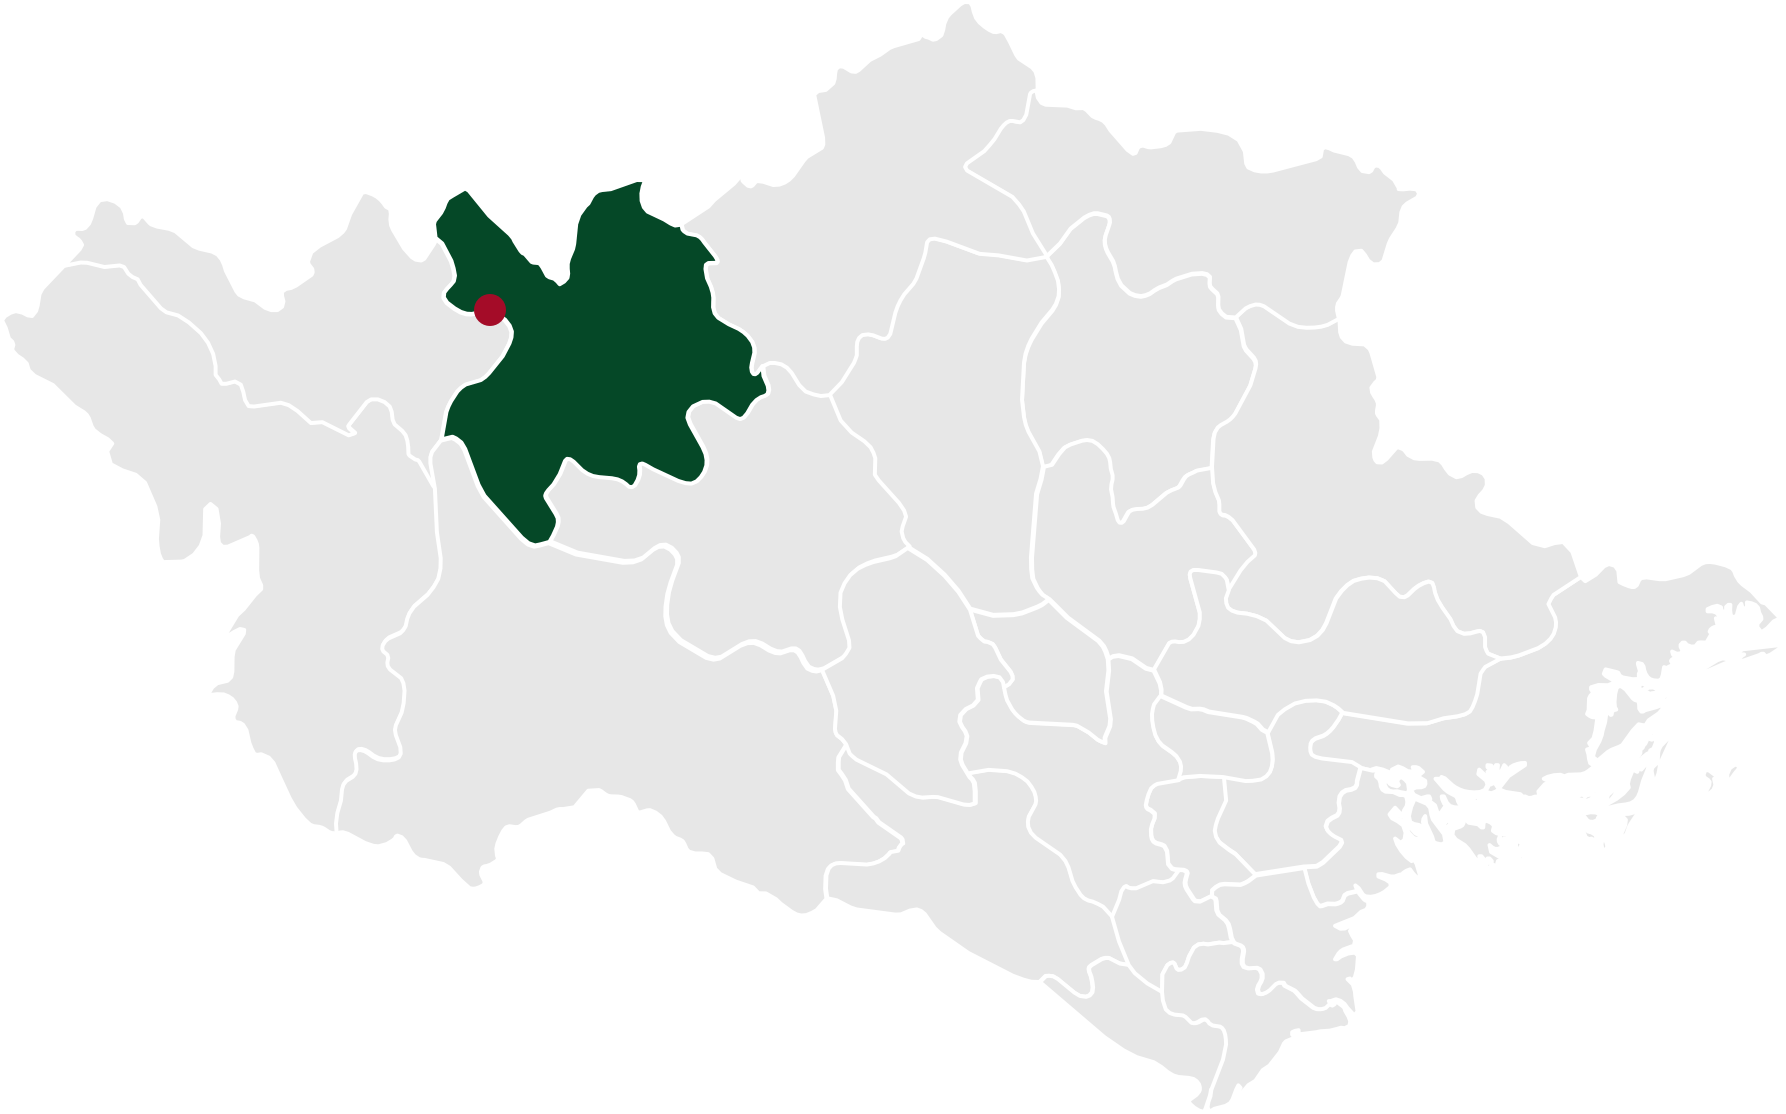 Sapa City information